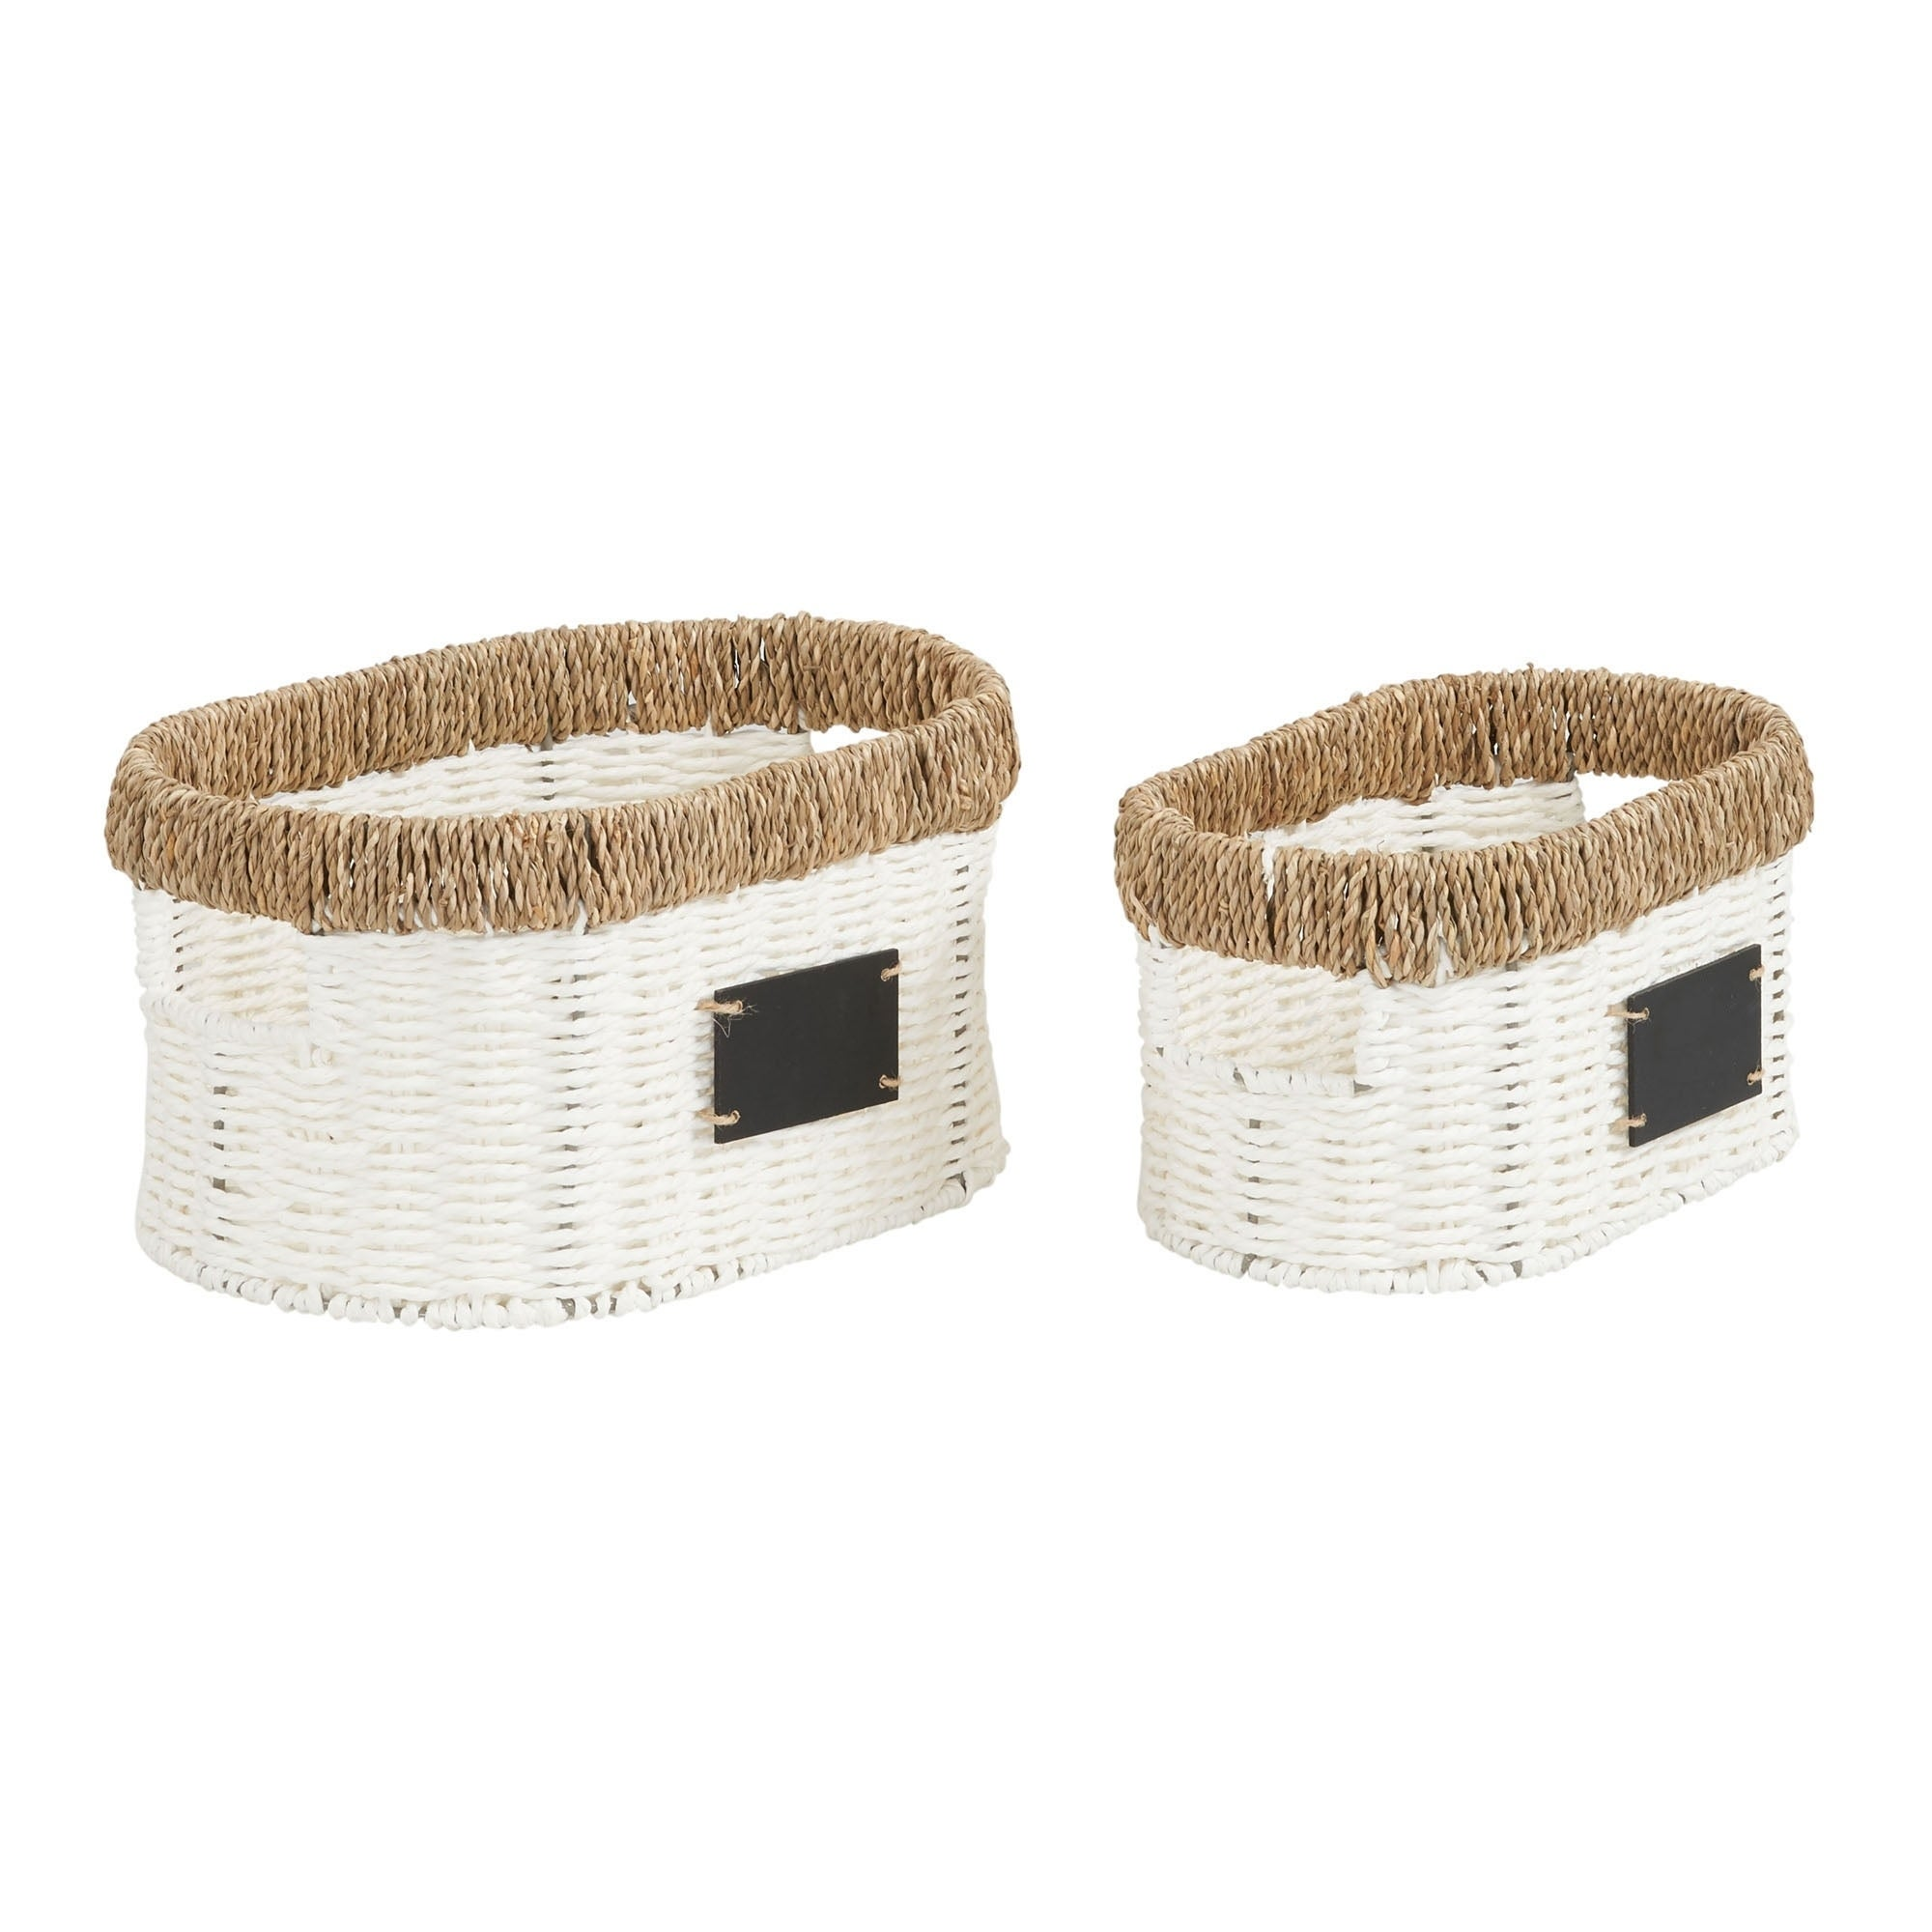 Household Essentials Natural Rim Oval Set Paper Rope And Seagrass 2 Piece Small Wicker Basket White Overstock 28153854